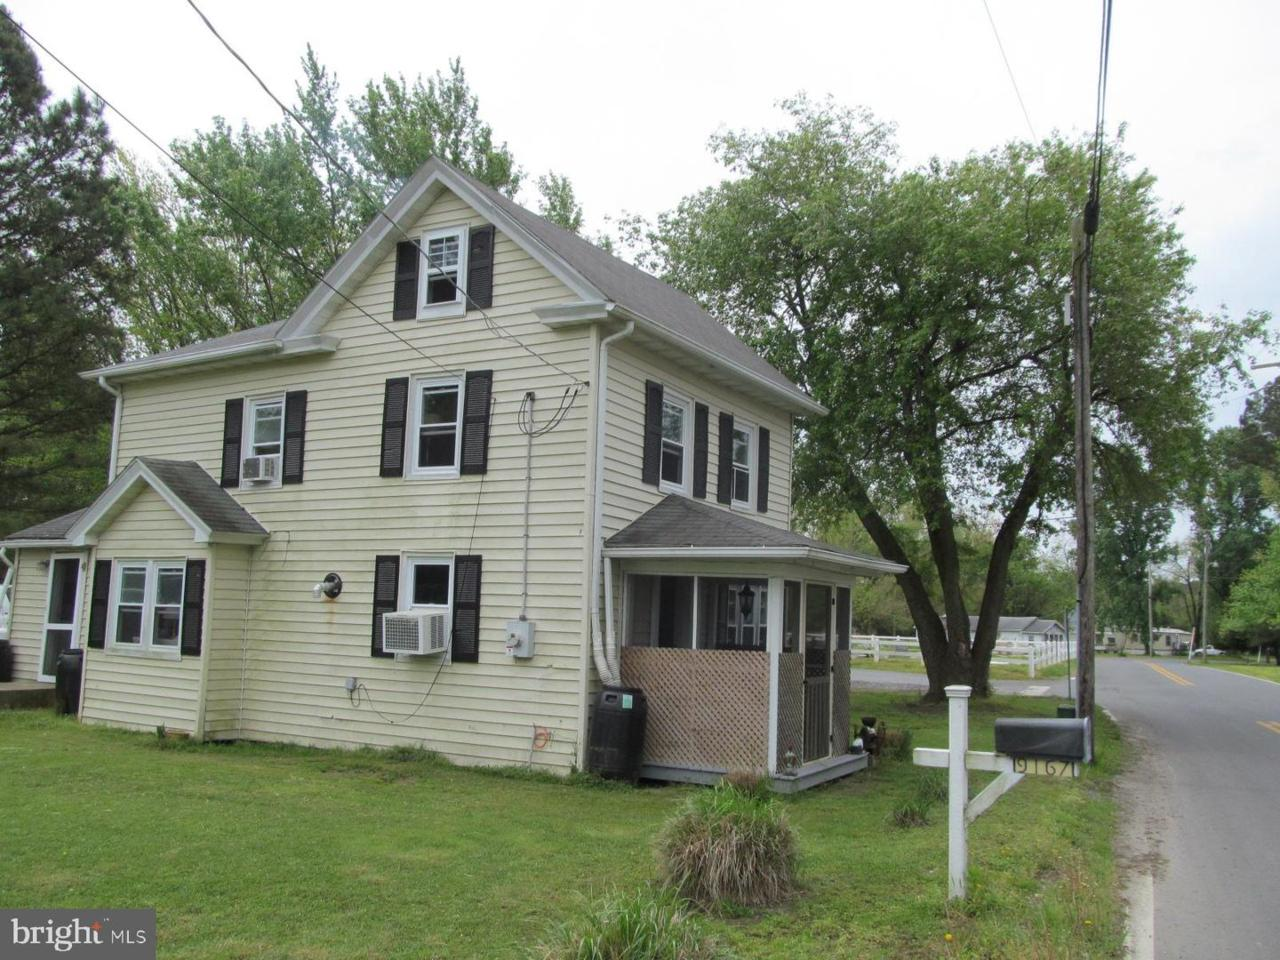 9167 Deal Island Road - Photo 1